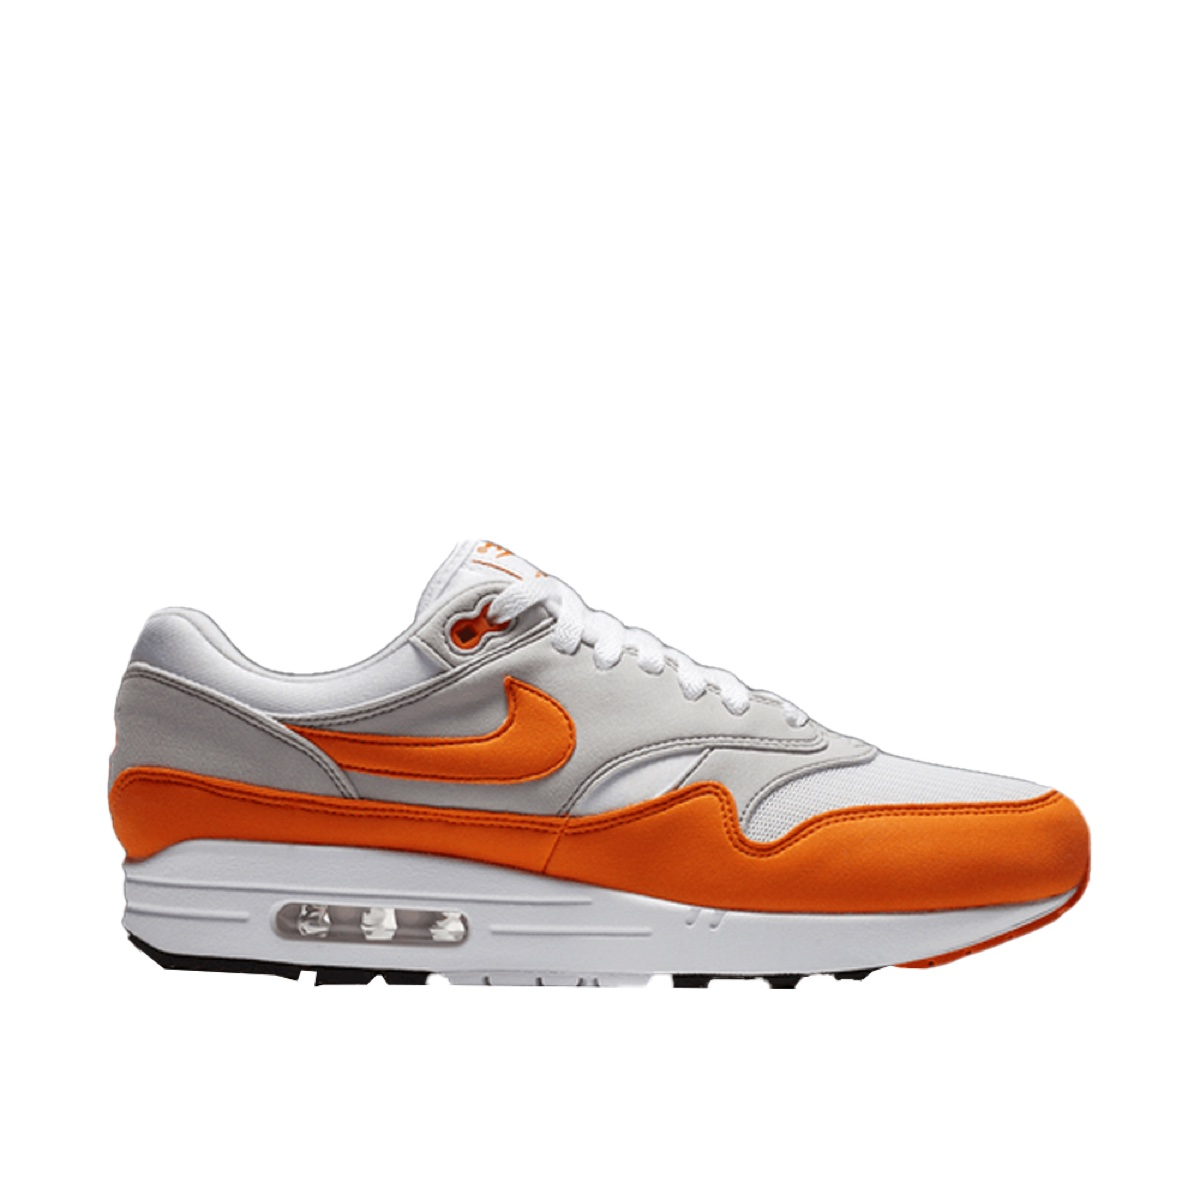 Nike Air Max 1 Anniversary Orange